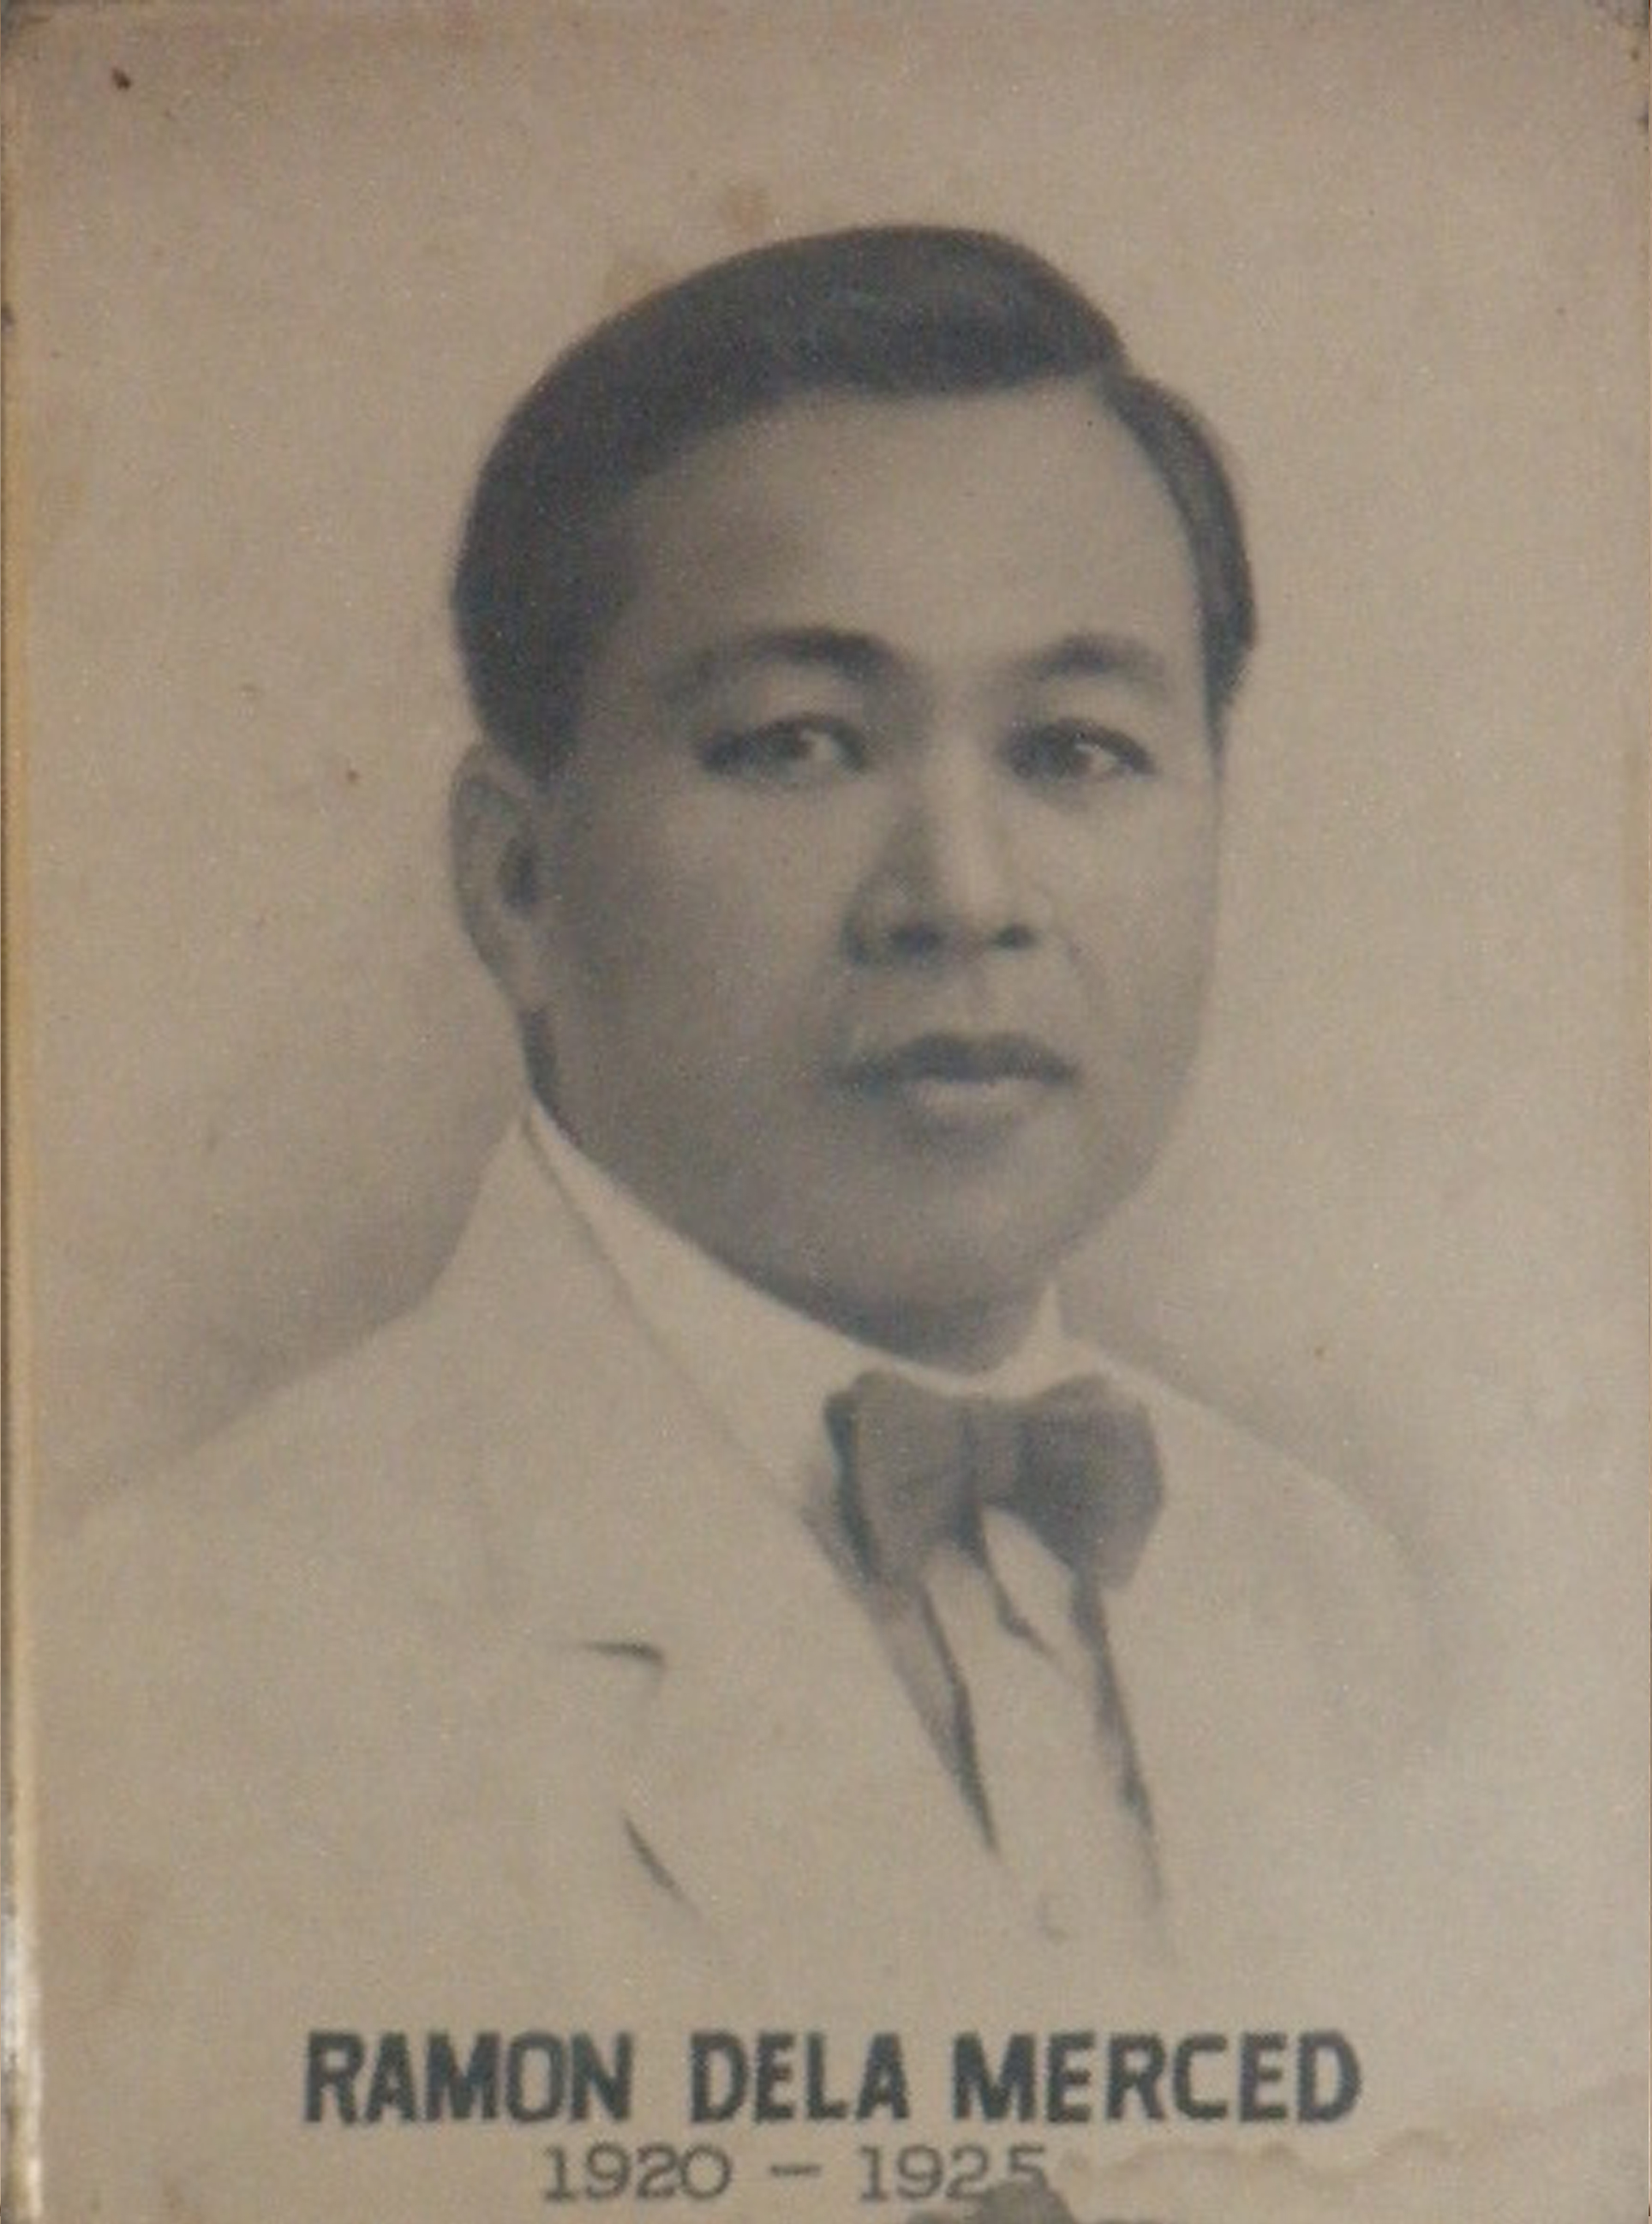 Mayor Ramon Dela Merced (1920-1925)